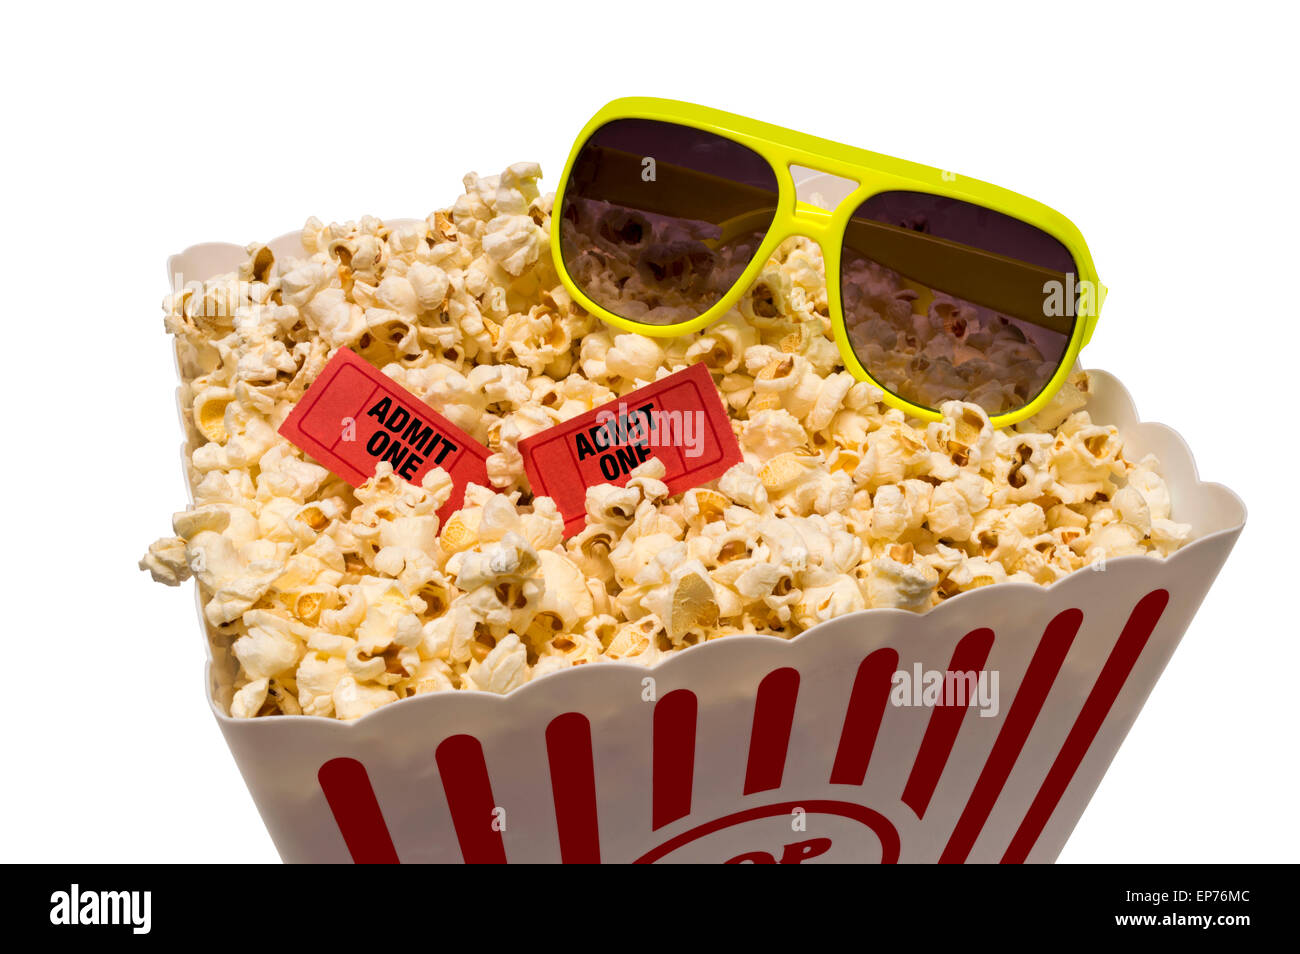 Summertime Fun At The Movies - Stock Image